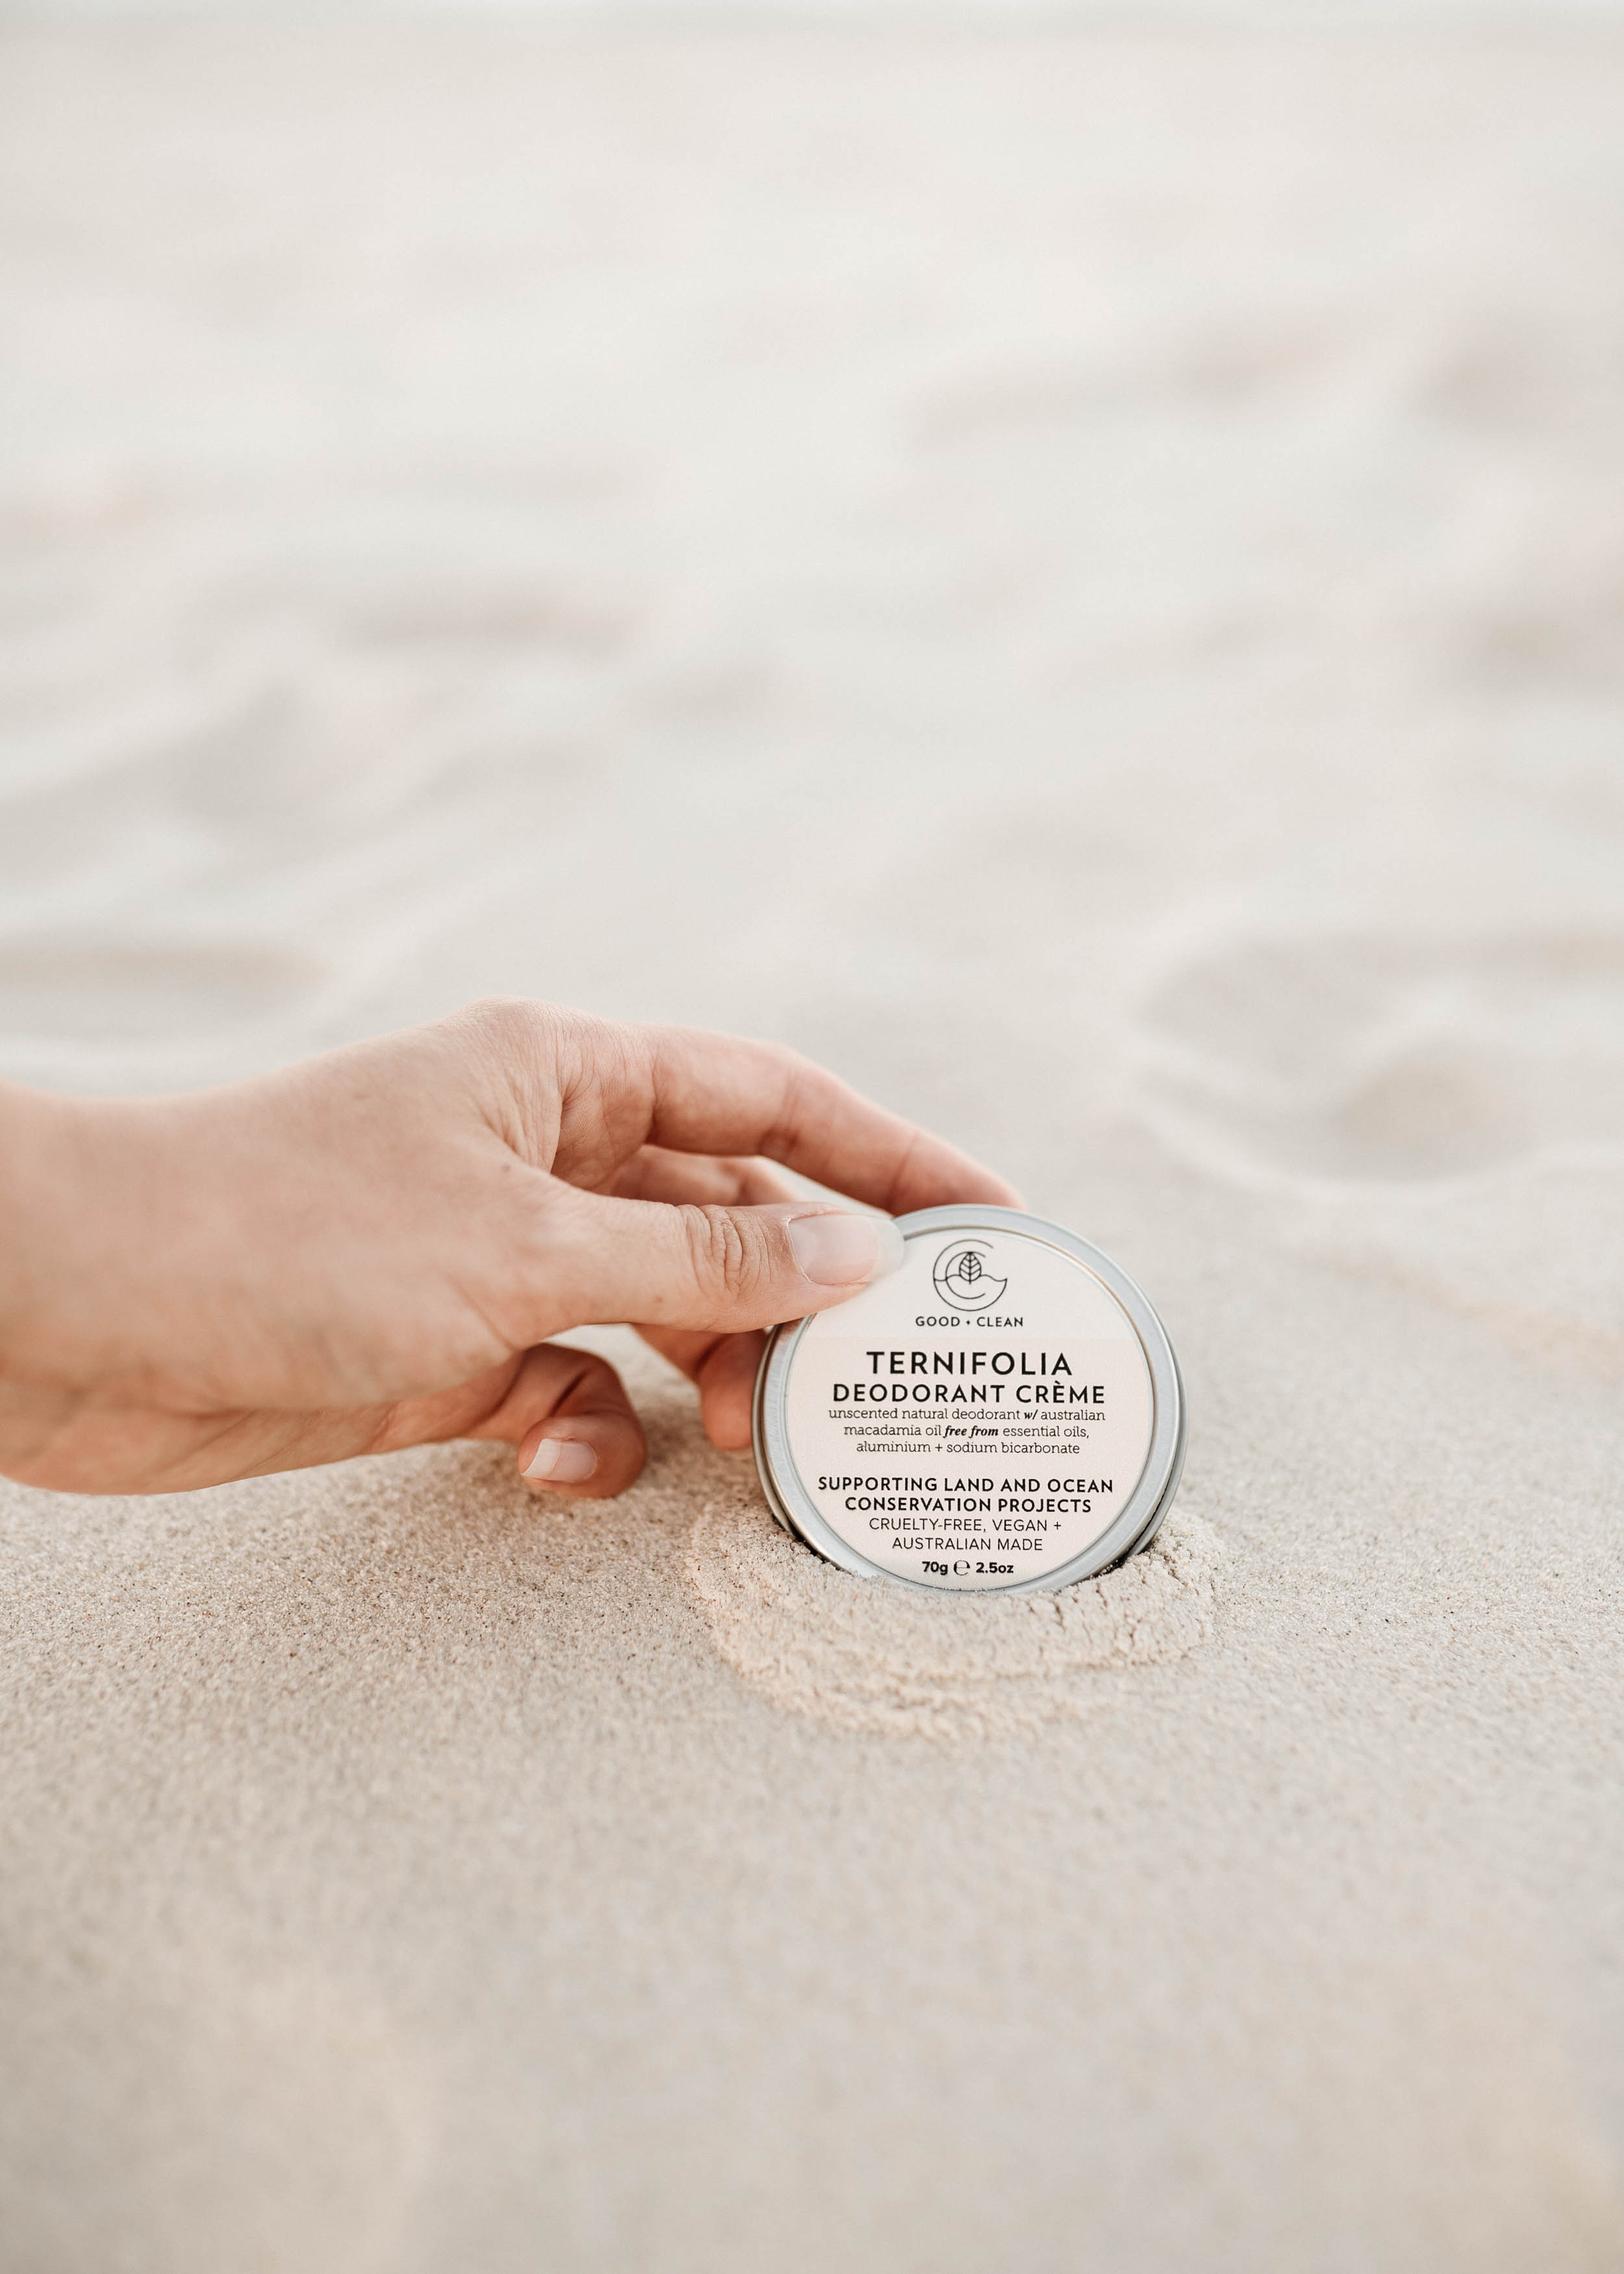 keira-mason-good-and-clean-natural-deodorant-in-sand.jpg